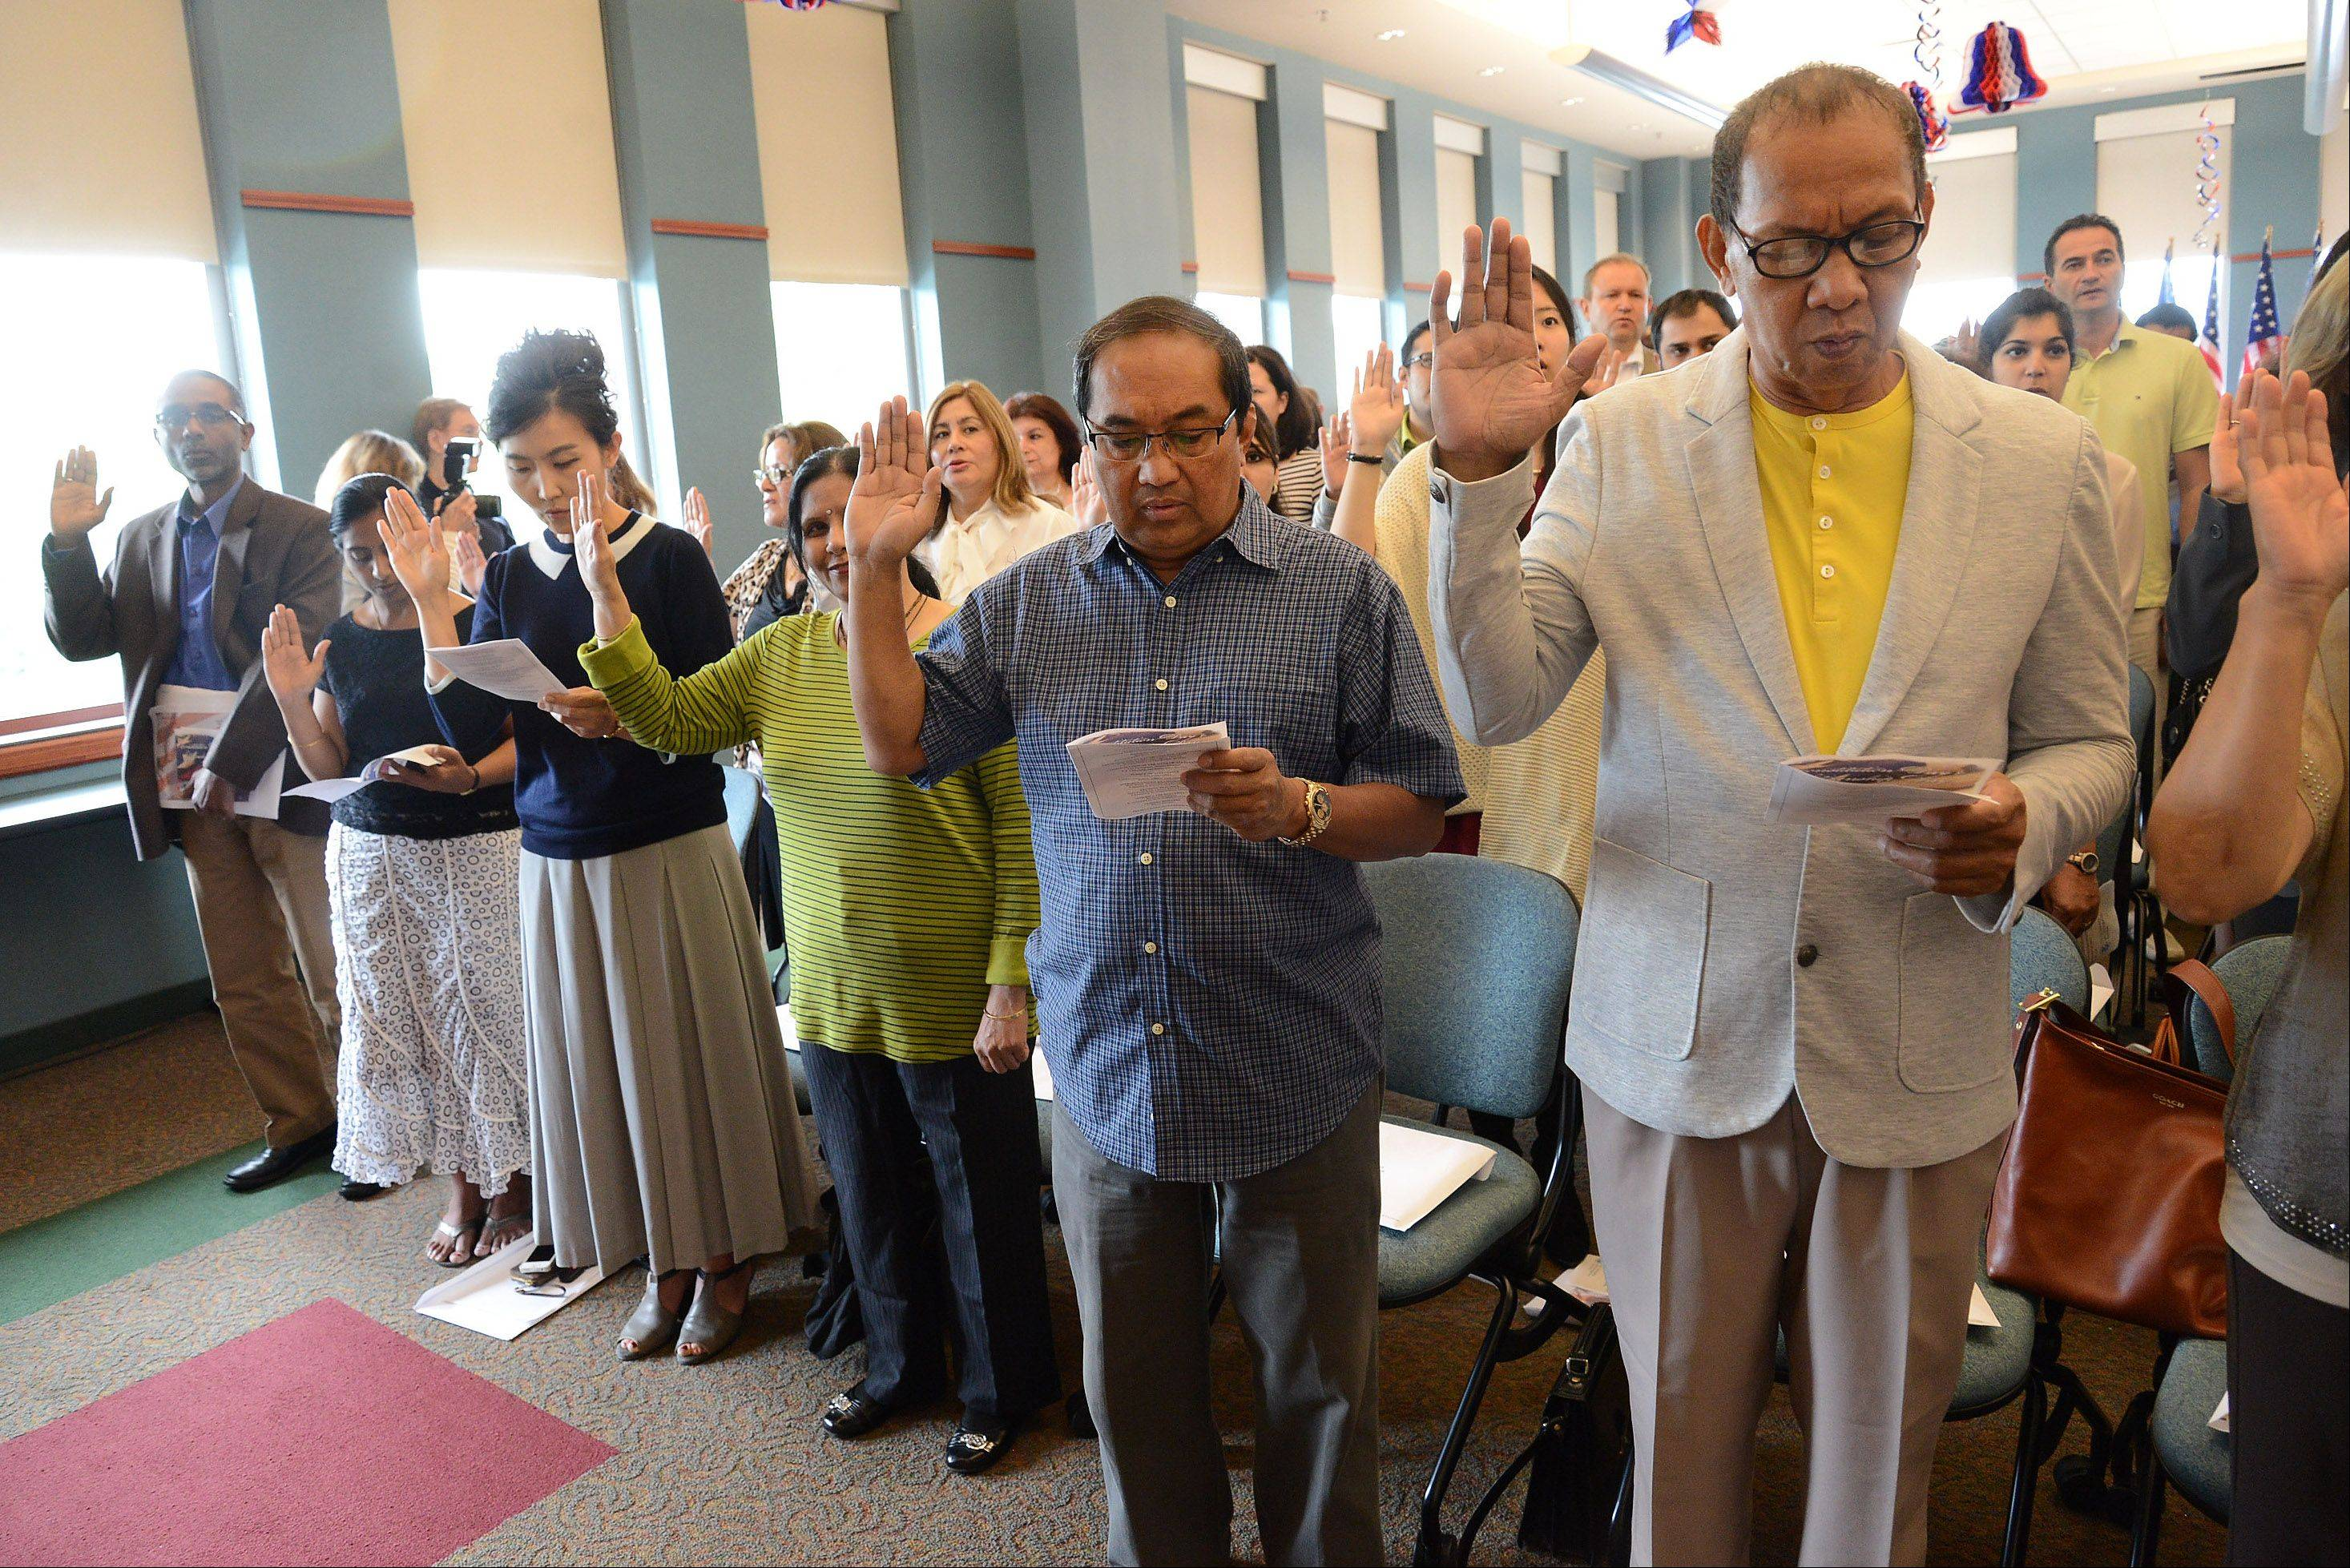 More than 70 people became U.S. citizens during a naturalization ceremony at the Schaumburg Township District Library Friday.